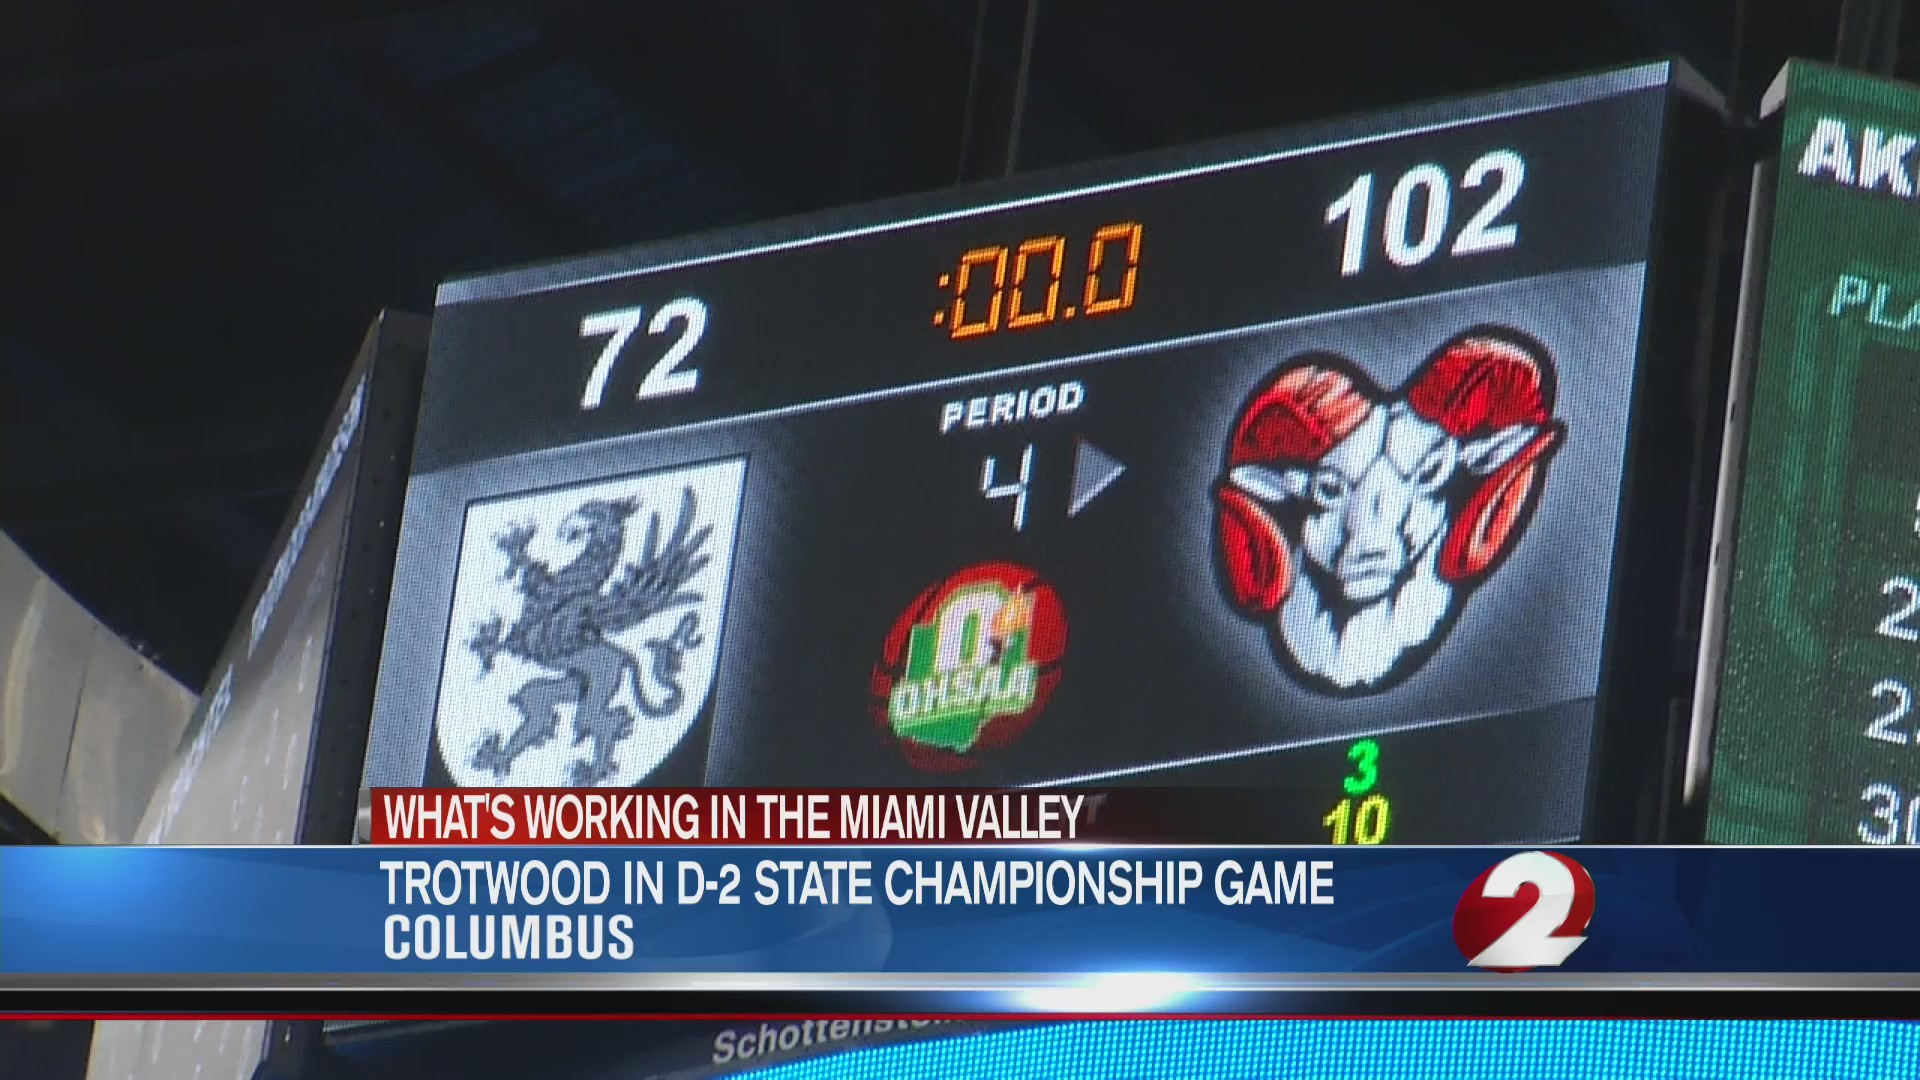 Trotwood in D2 state championship game